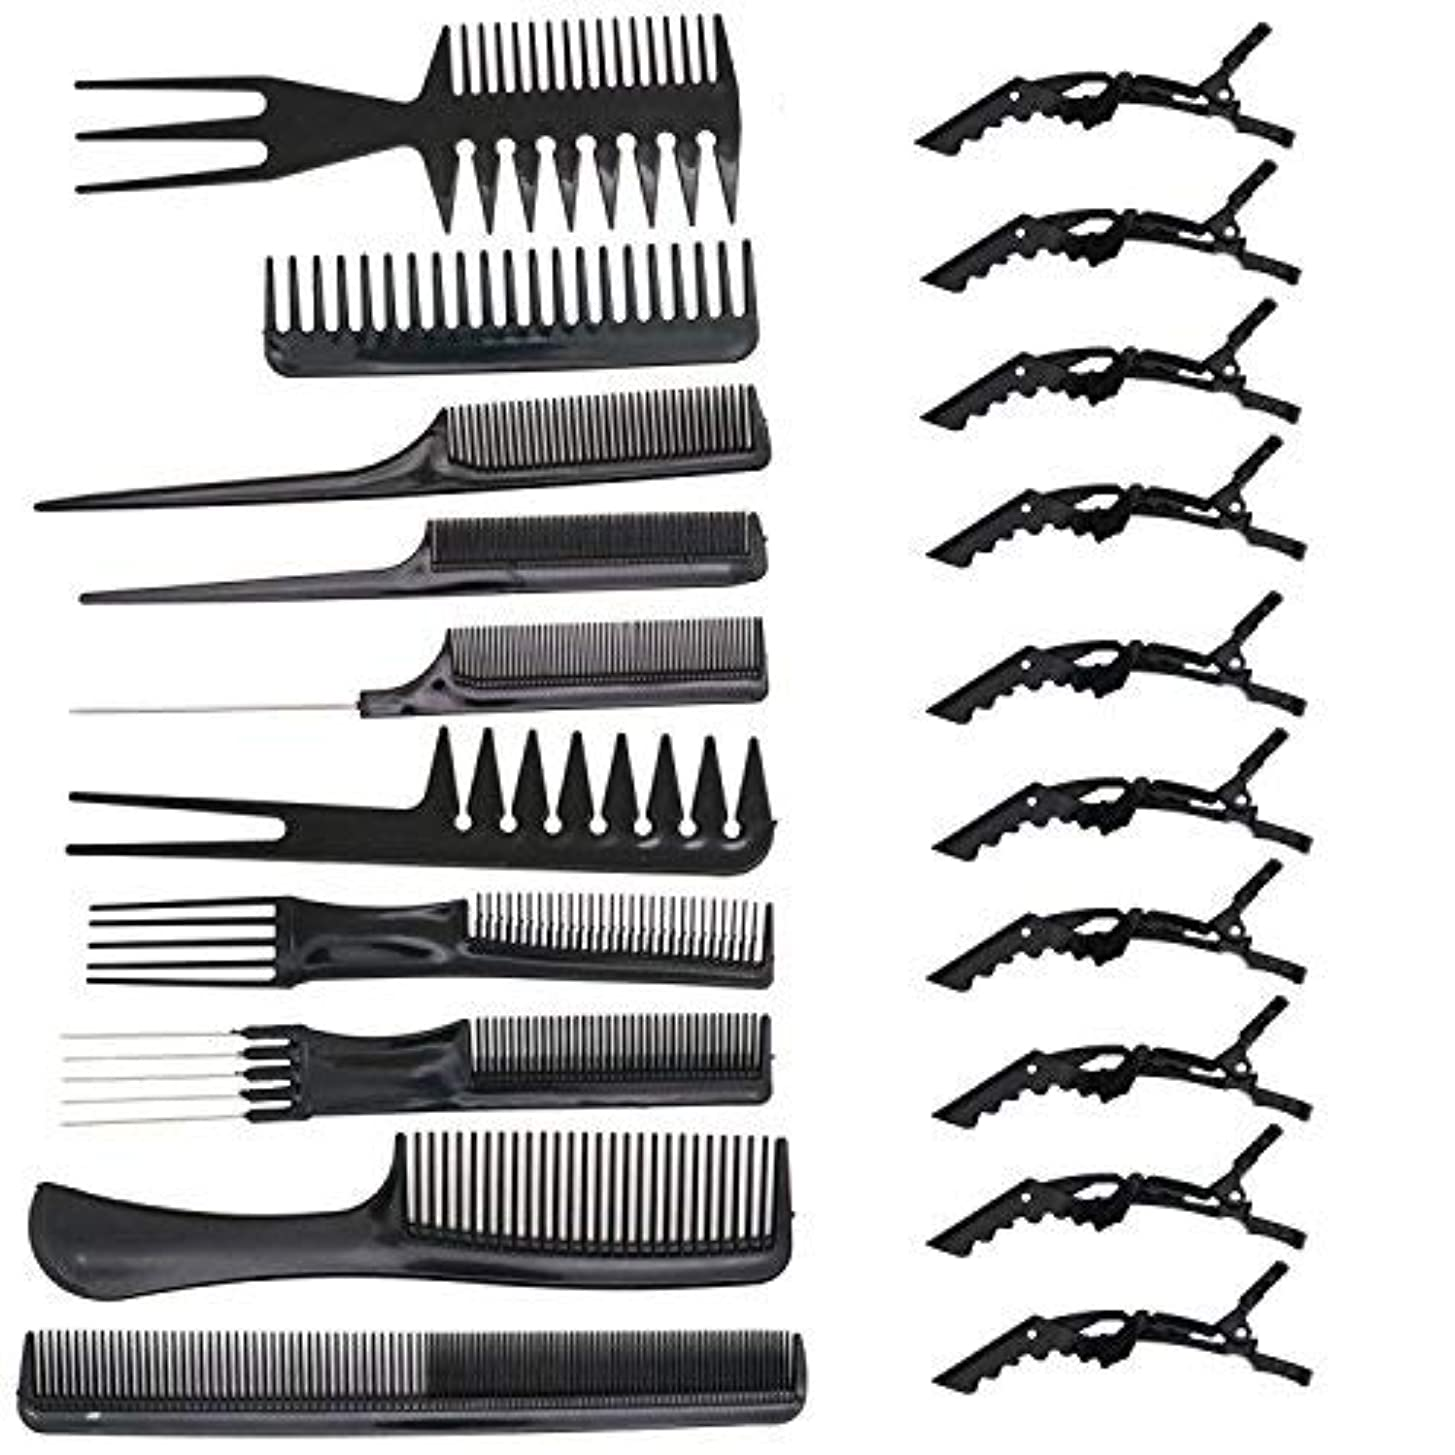 バンドバイナリ北米HUELE 10 Pcs Professional Hair Styling Comb with Styling Clips Hair Salon Styling Barbers Set Kit [並行輸入品]